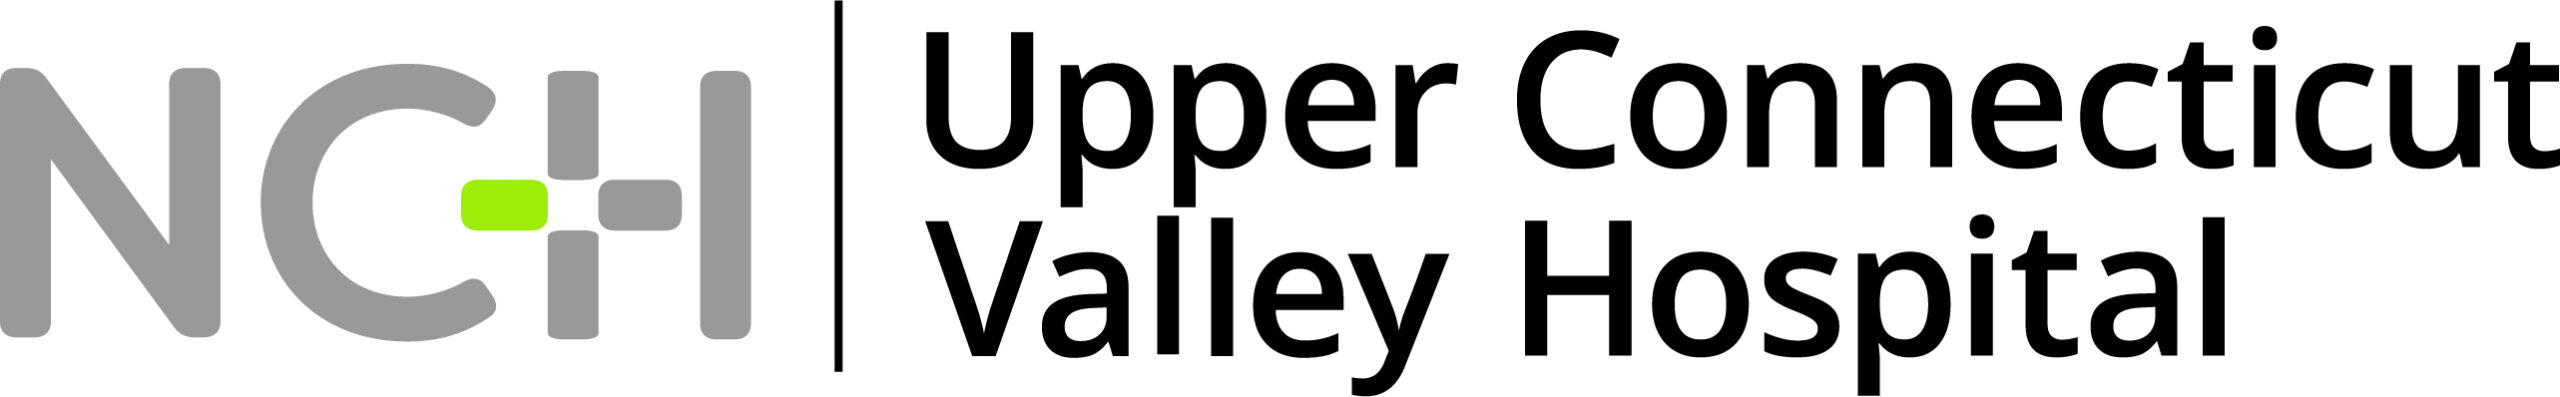 Upper Connecticut Valley Hospital